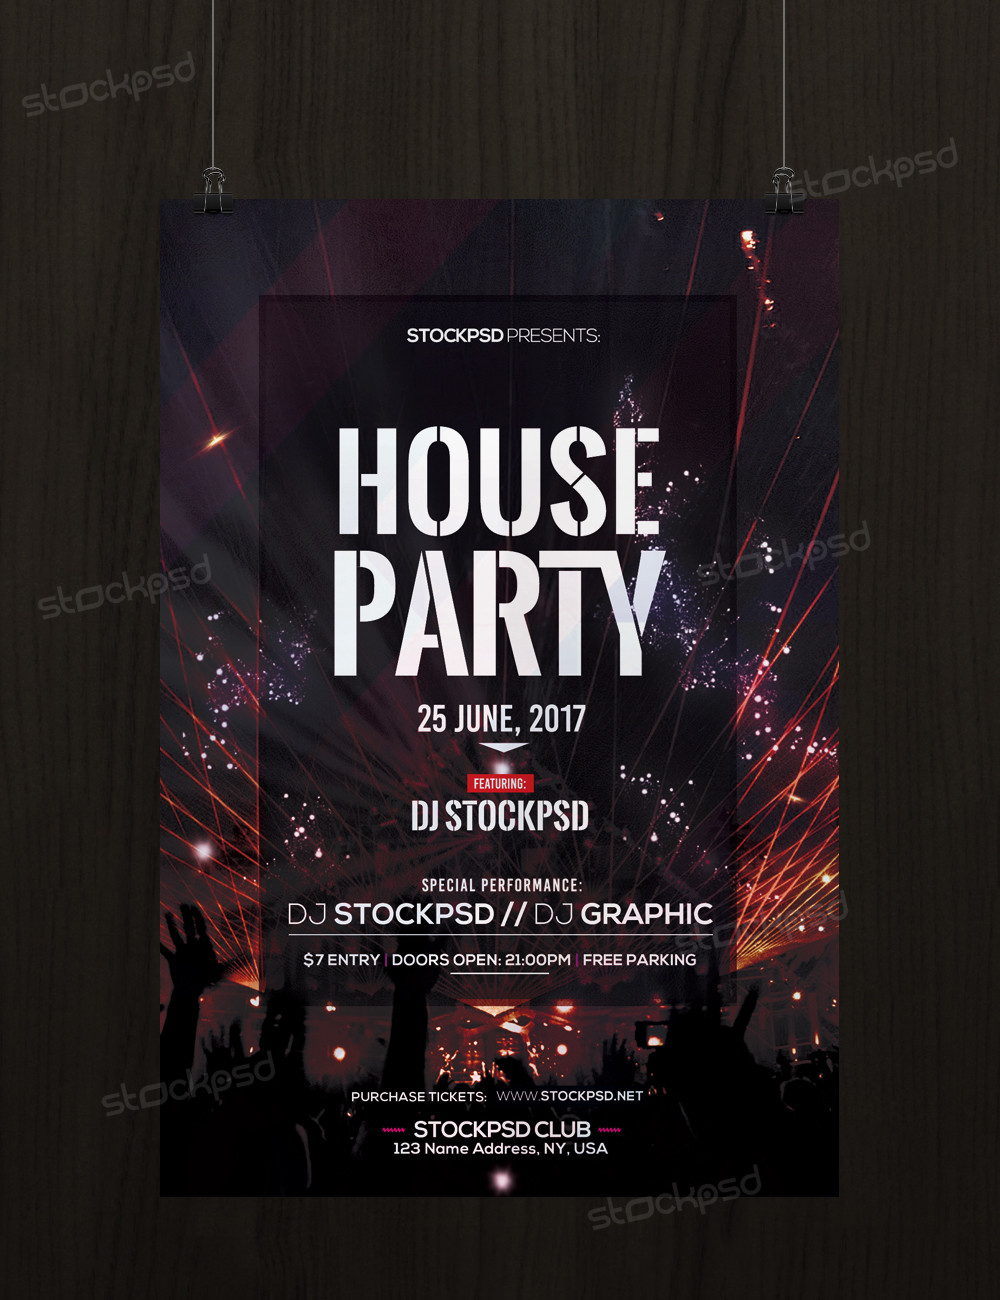 house party download free psd party flyer template - Free Psd Flyer Templates